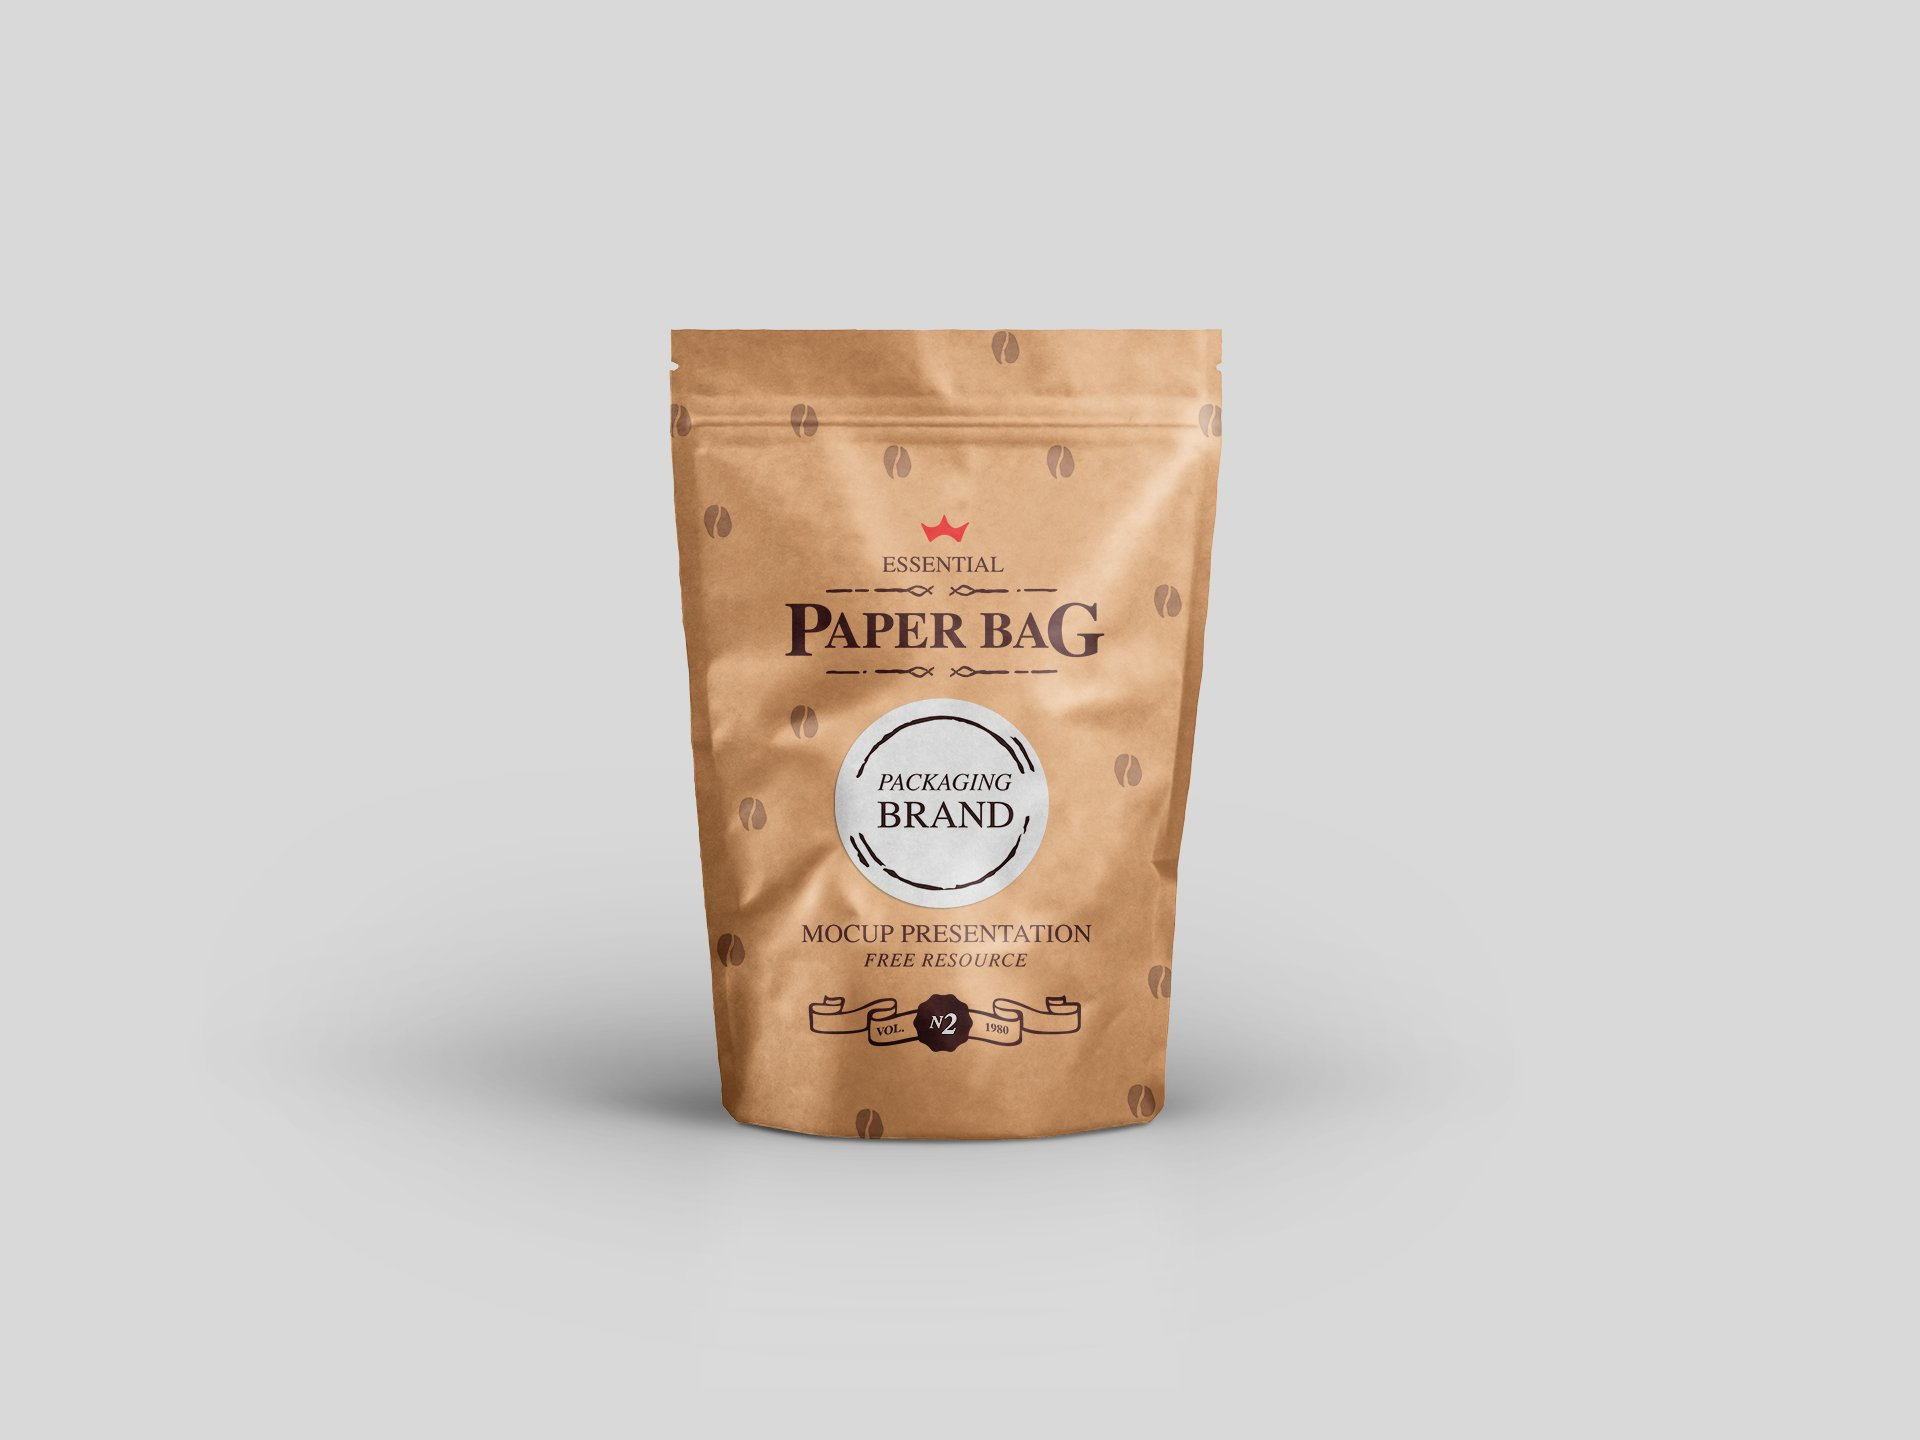 Paper-Bag-packaging-Mockup-psd